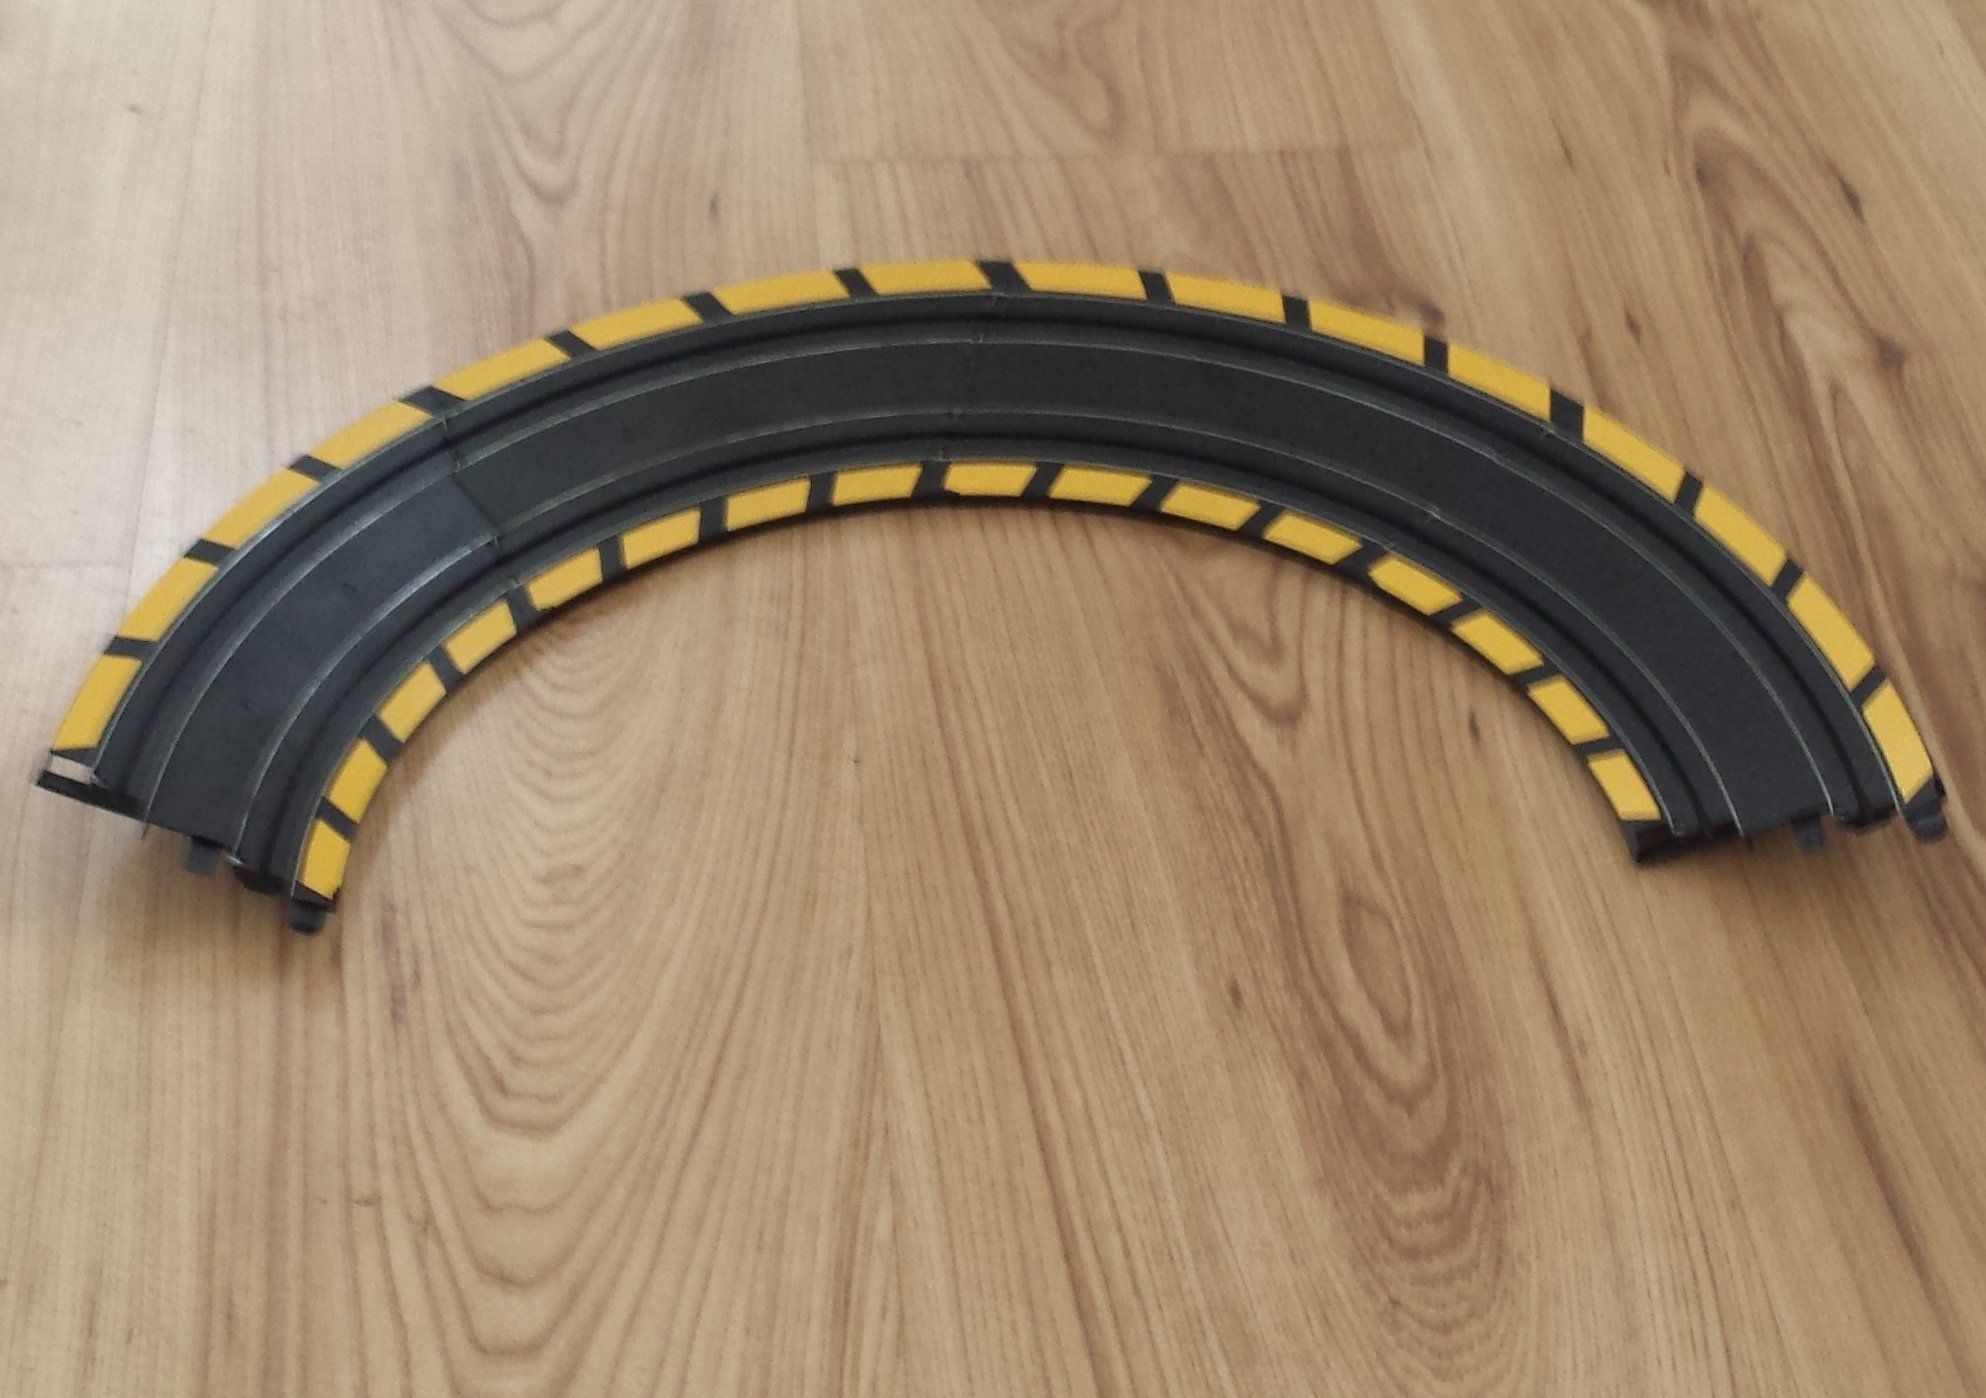 Digital Track Scalextric 1:32 Sport C8212 Silver Barriers x 5 and Clips x 15